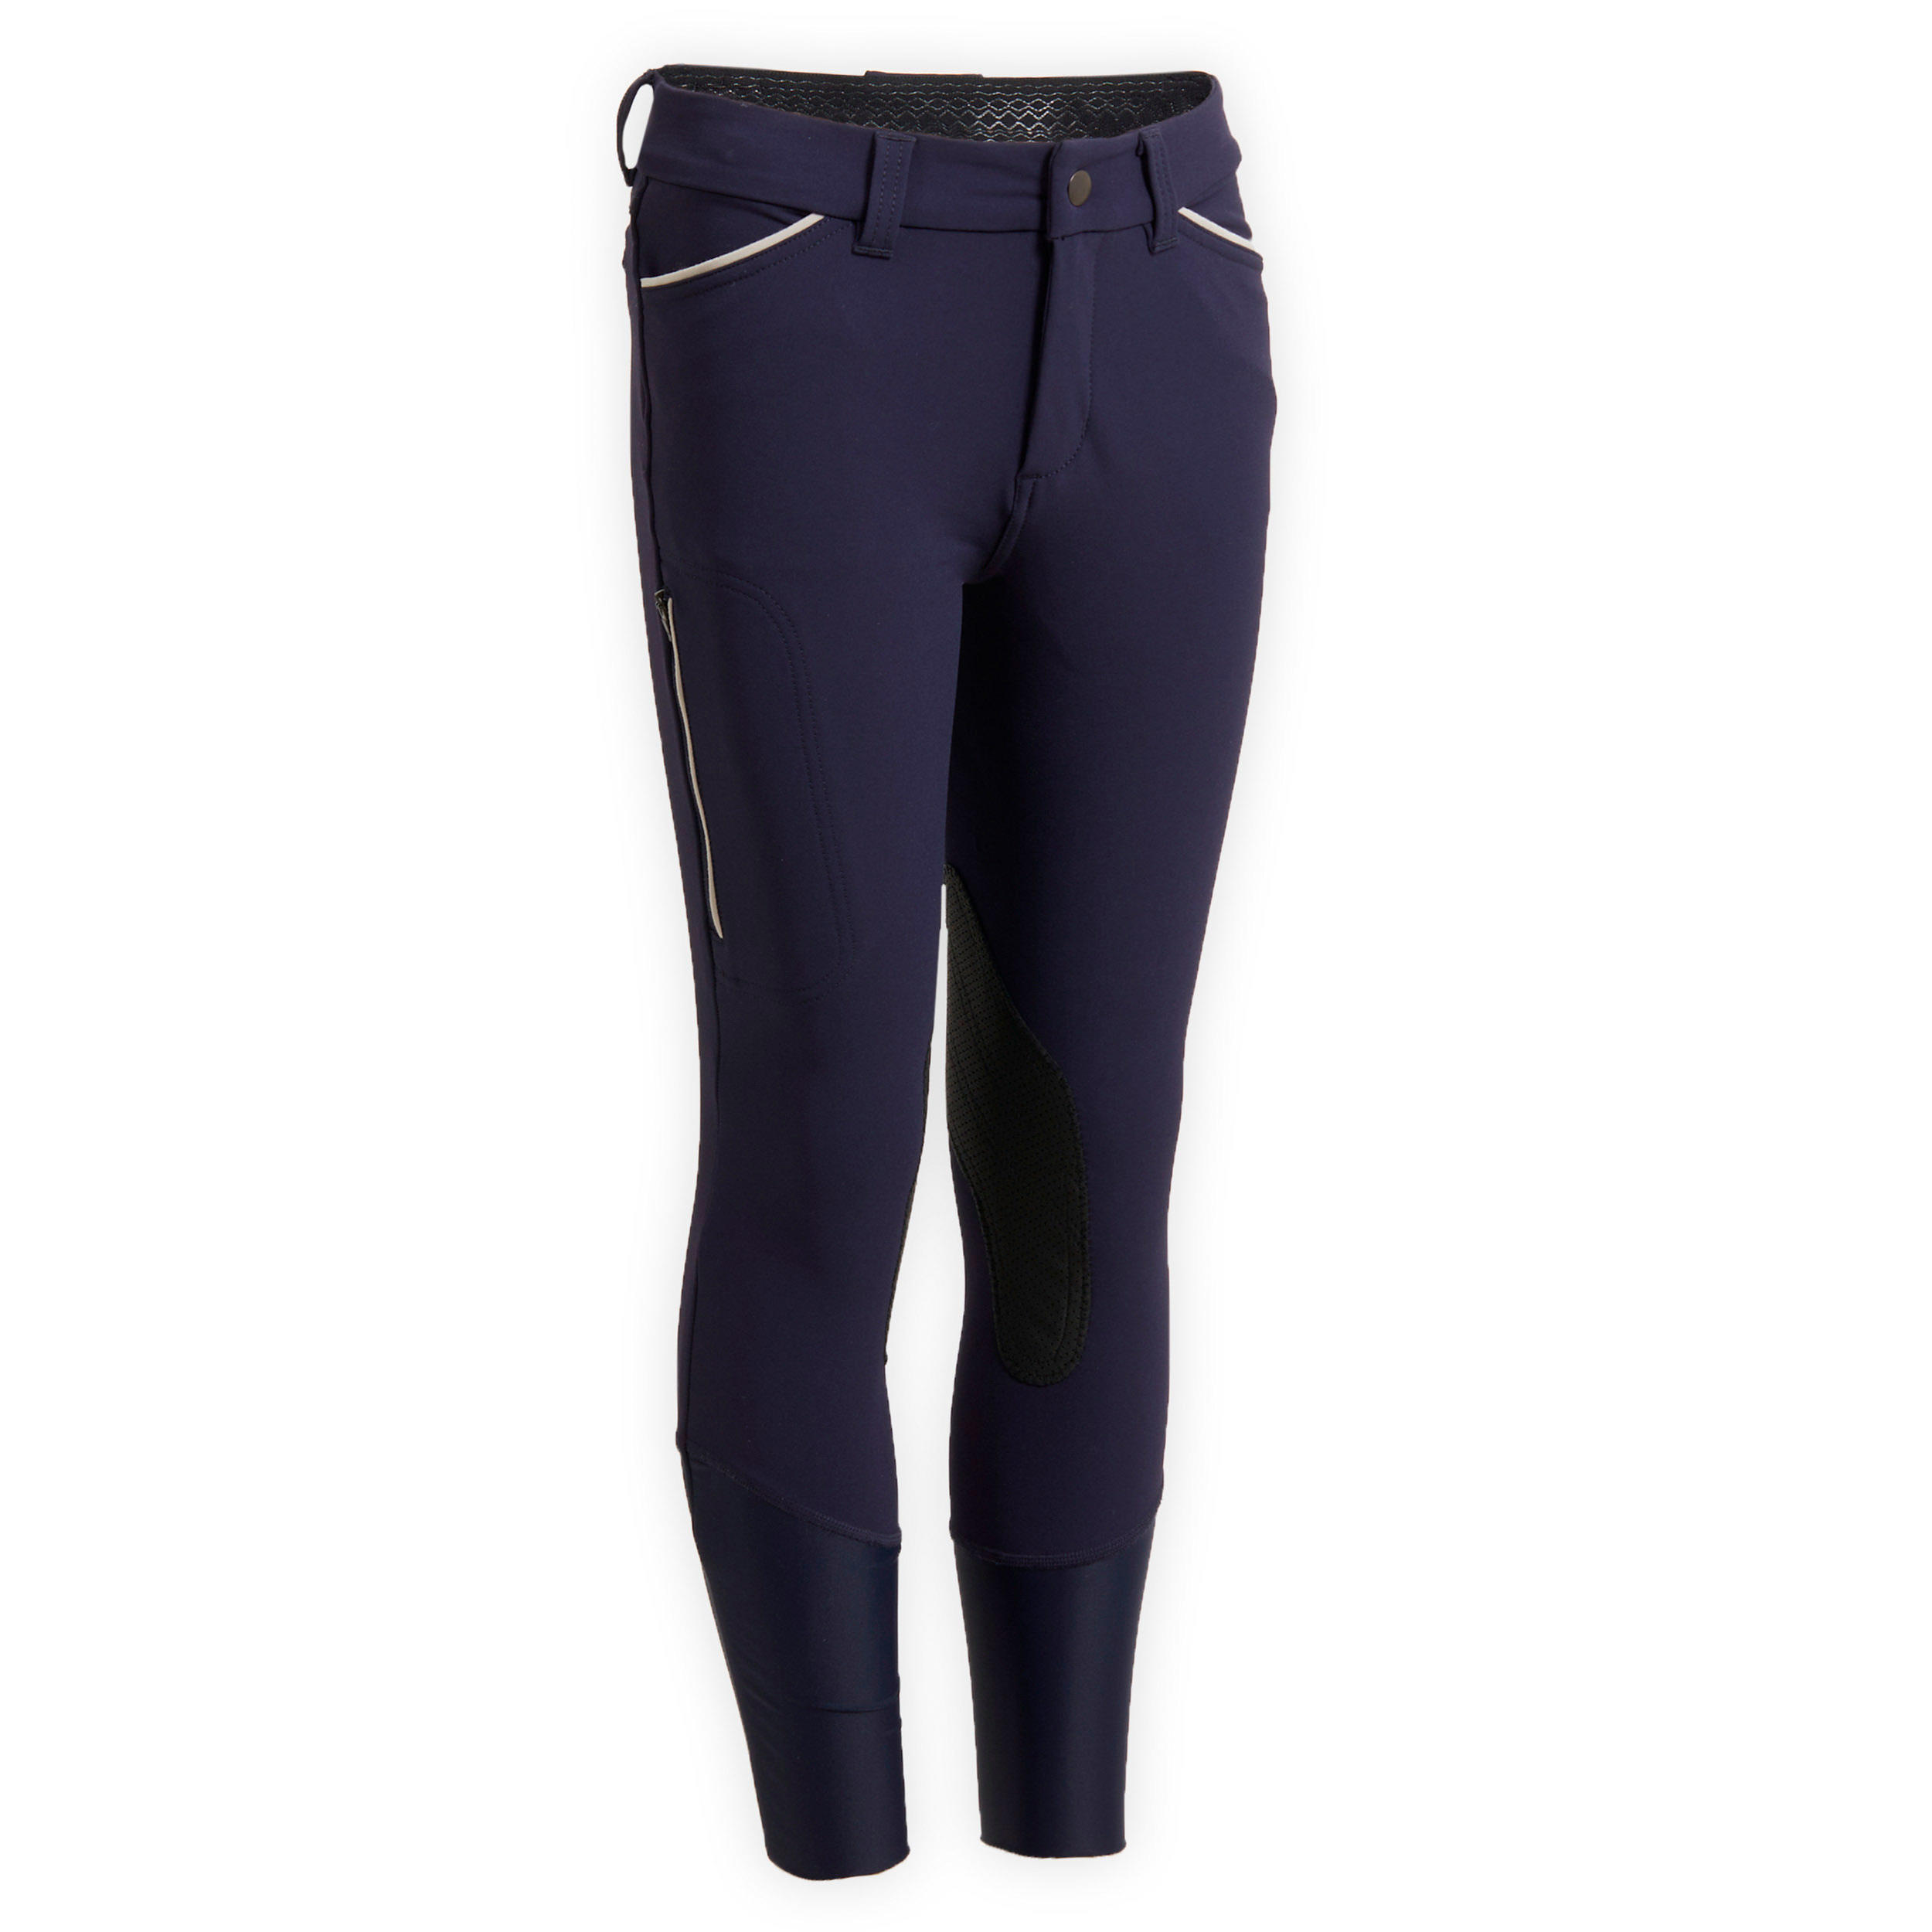 Pantalon BR500 Copii imagine produs